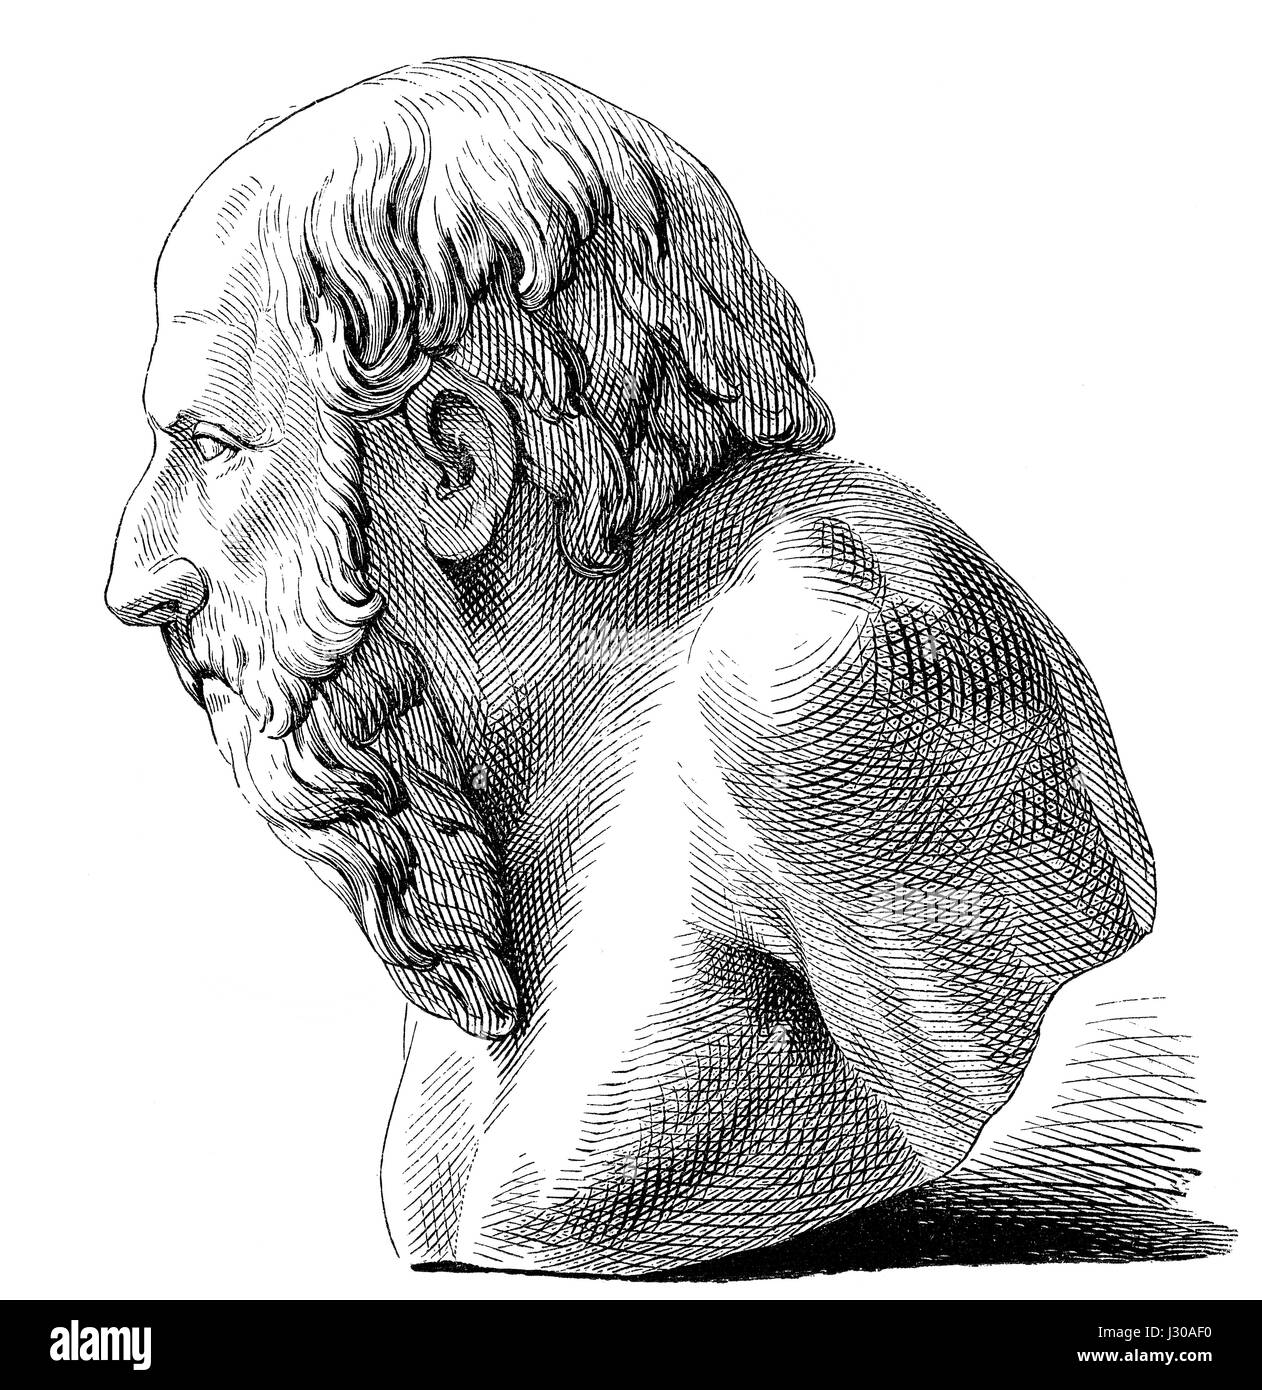 Diogenes, a ancient Greek philosopher - Stock Image